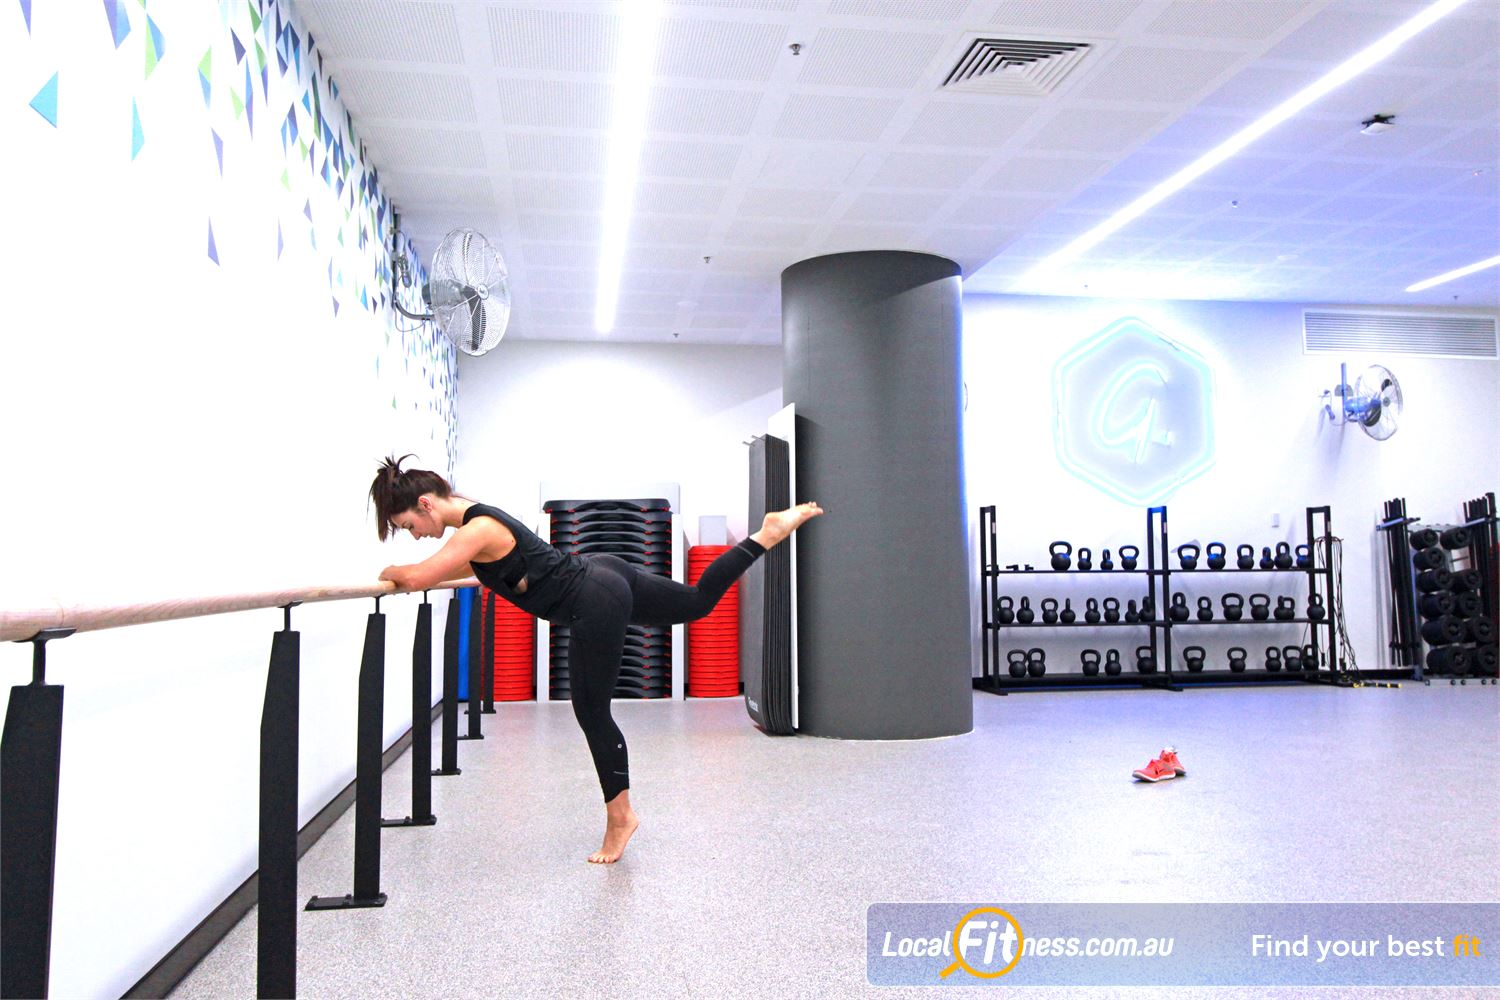 Goodlife Health Clubs Docklands Exclusive Docklands Barre, Yoga and Pilates classes.